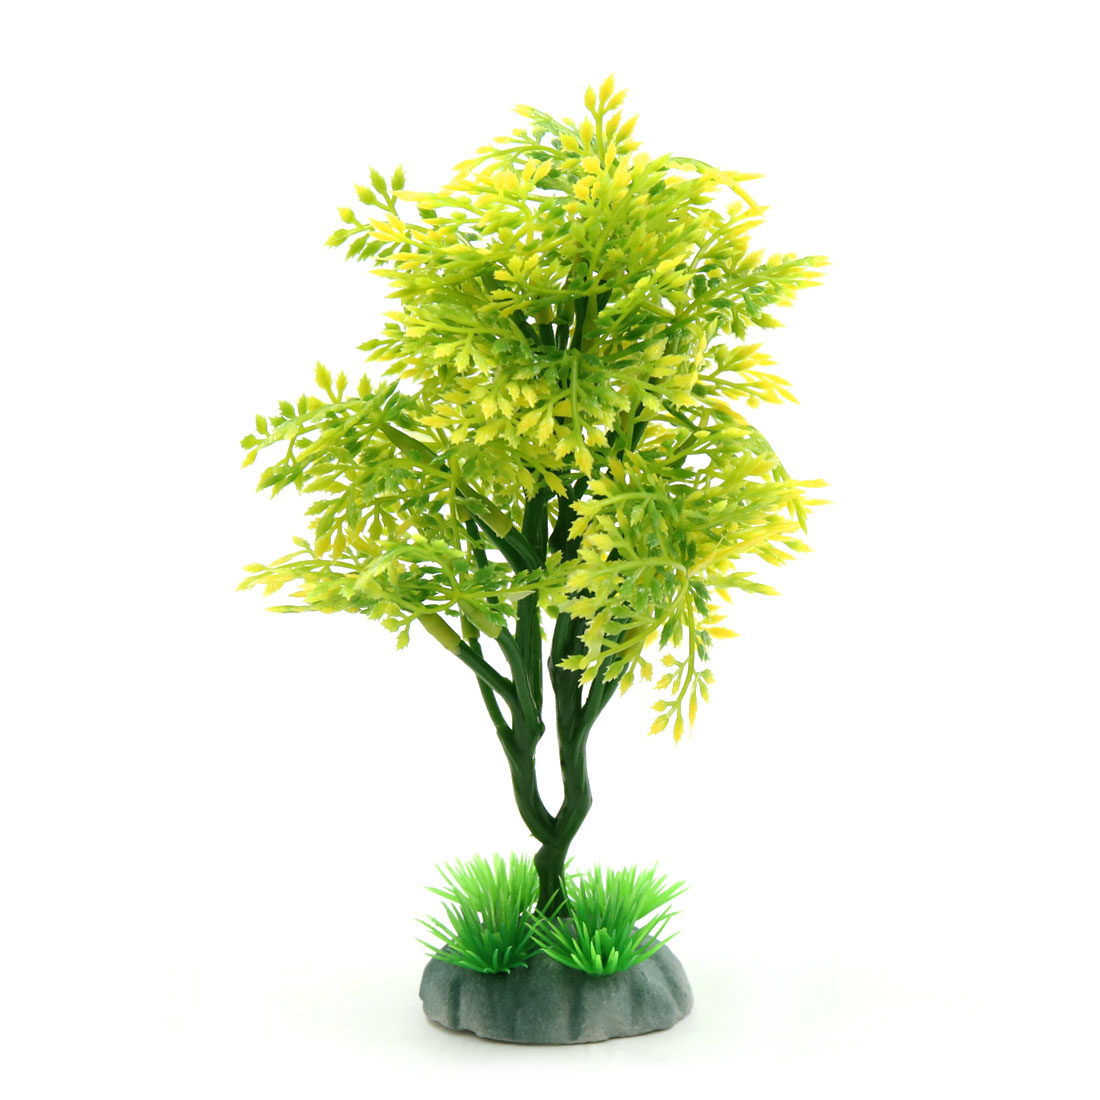 Yellow Green Plastic Mini Plant Aquarium Fishbowl Ornament Home Decor w/ Stand